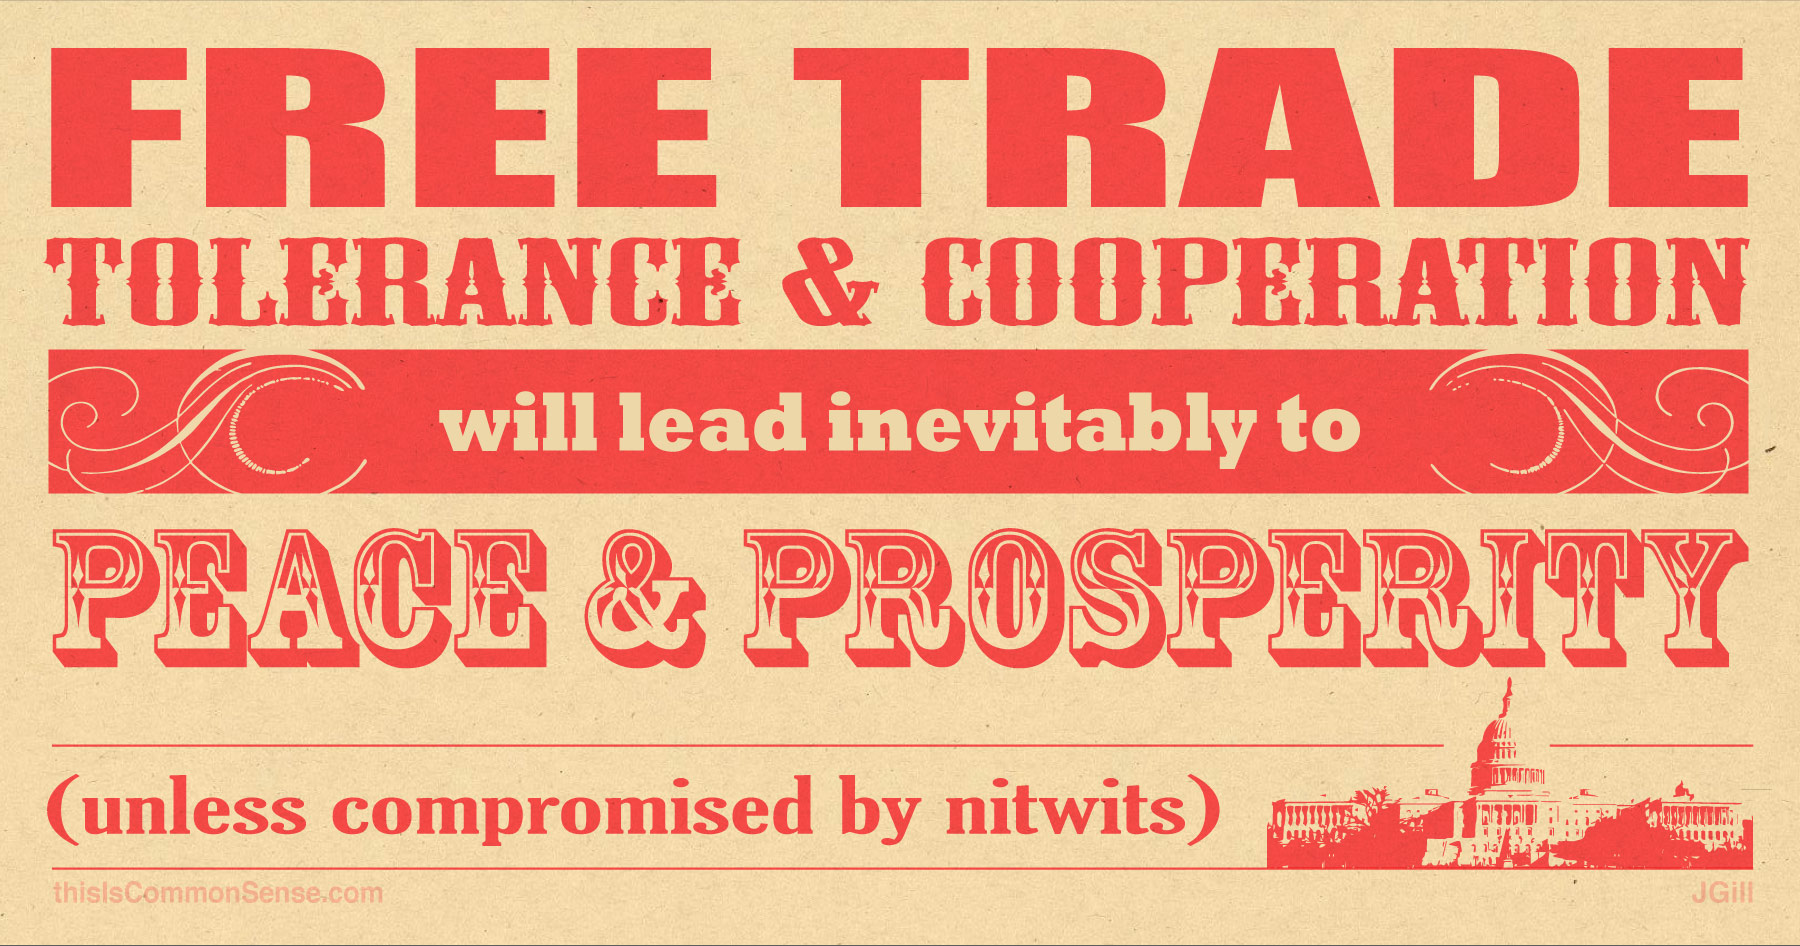 Free Trade, Tolerance and Cooperation lead to Peace and Prosperity